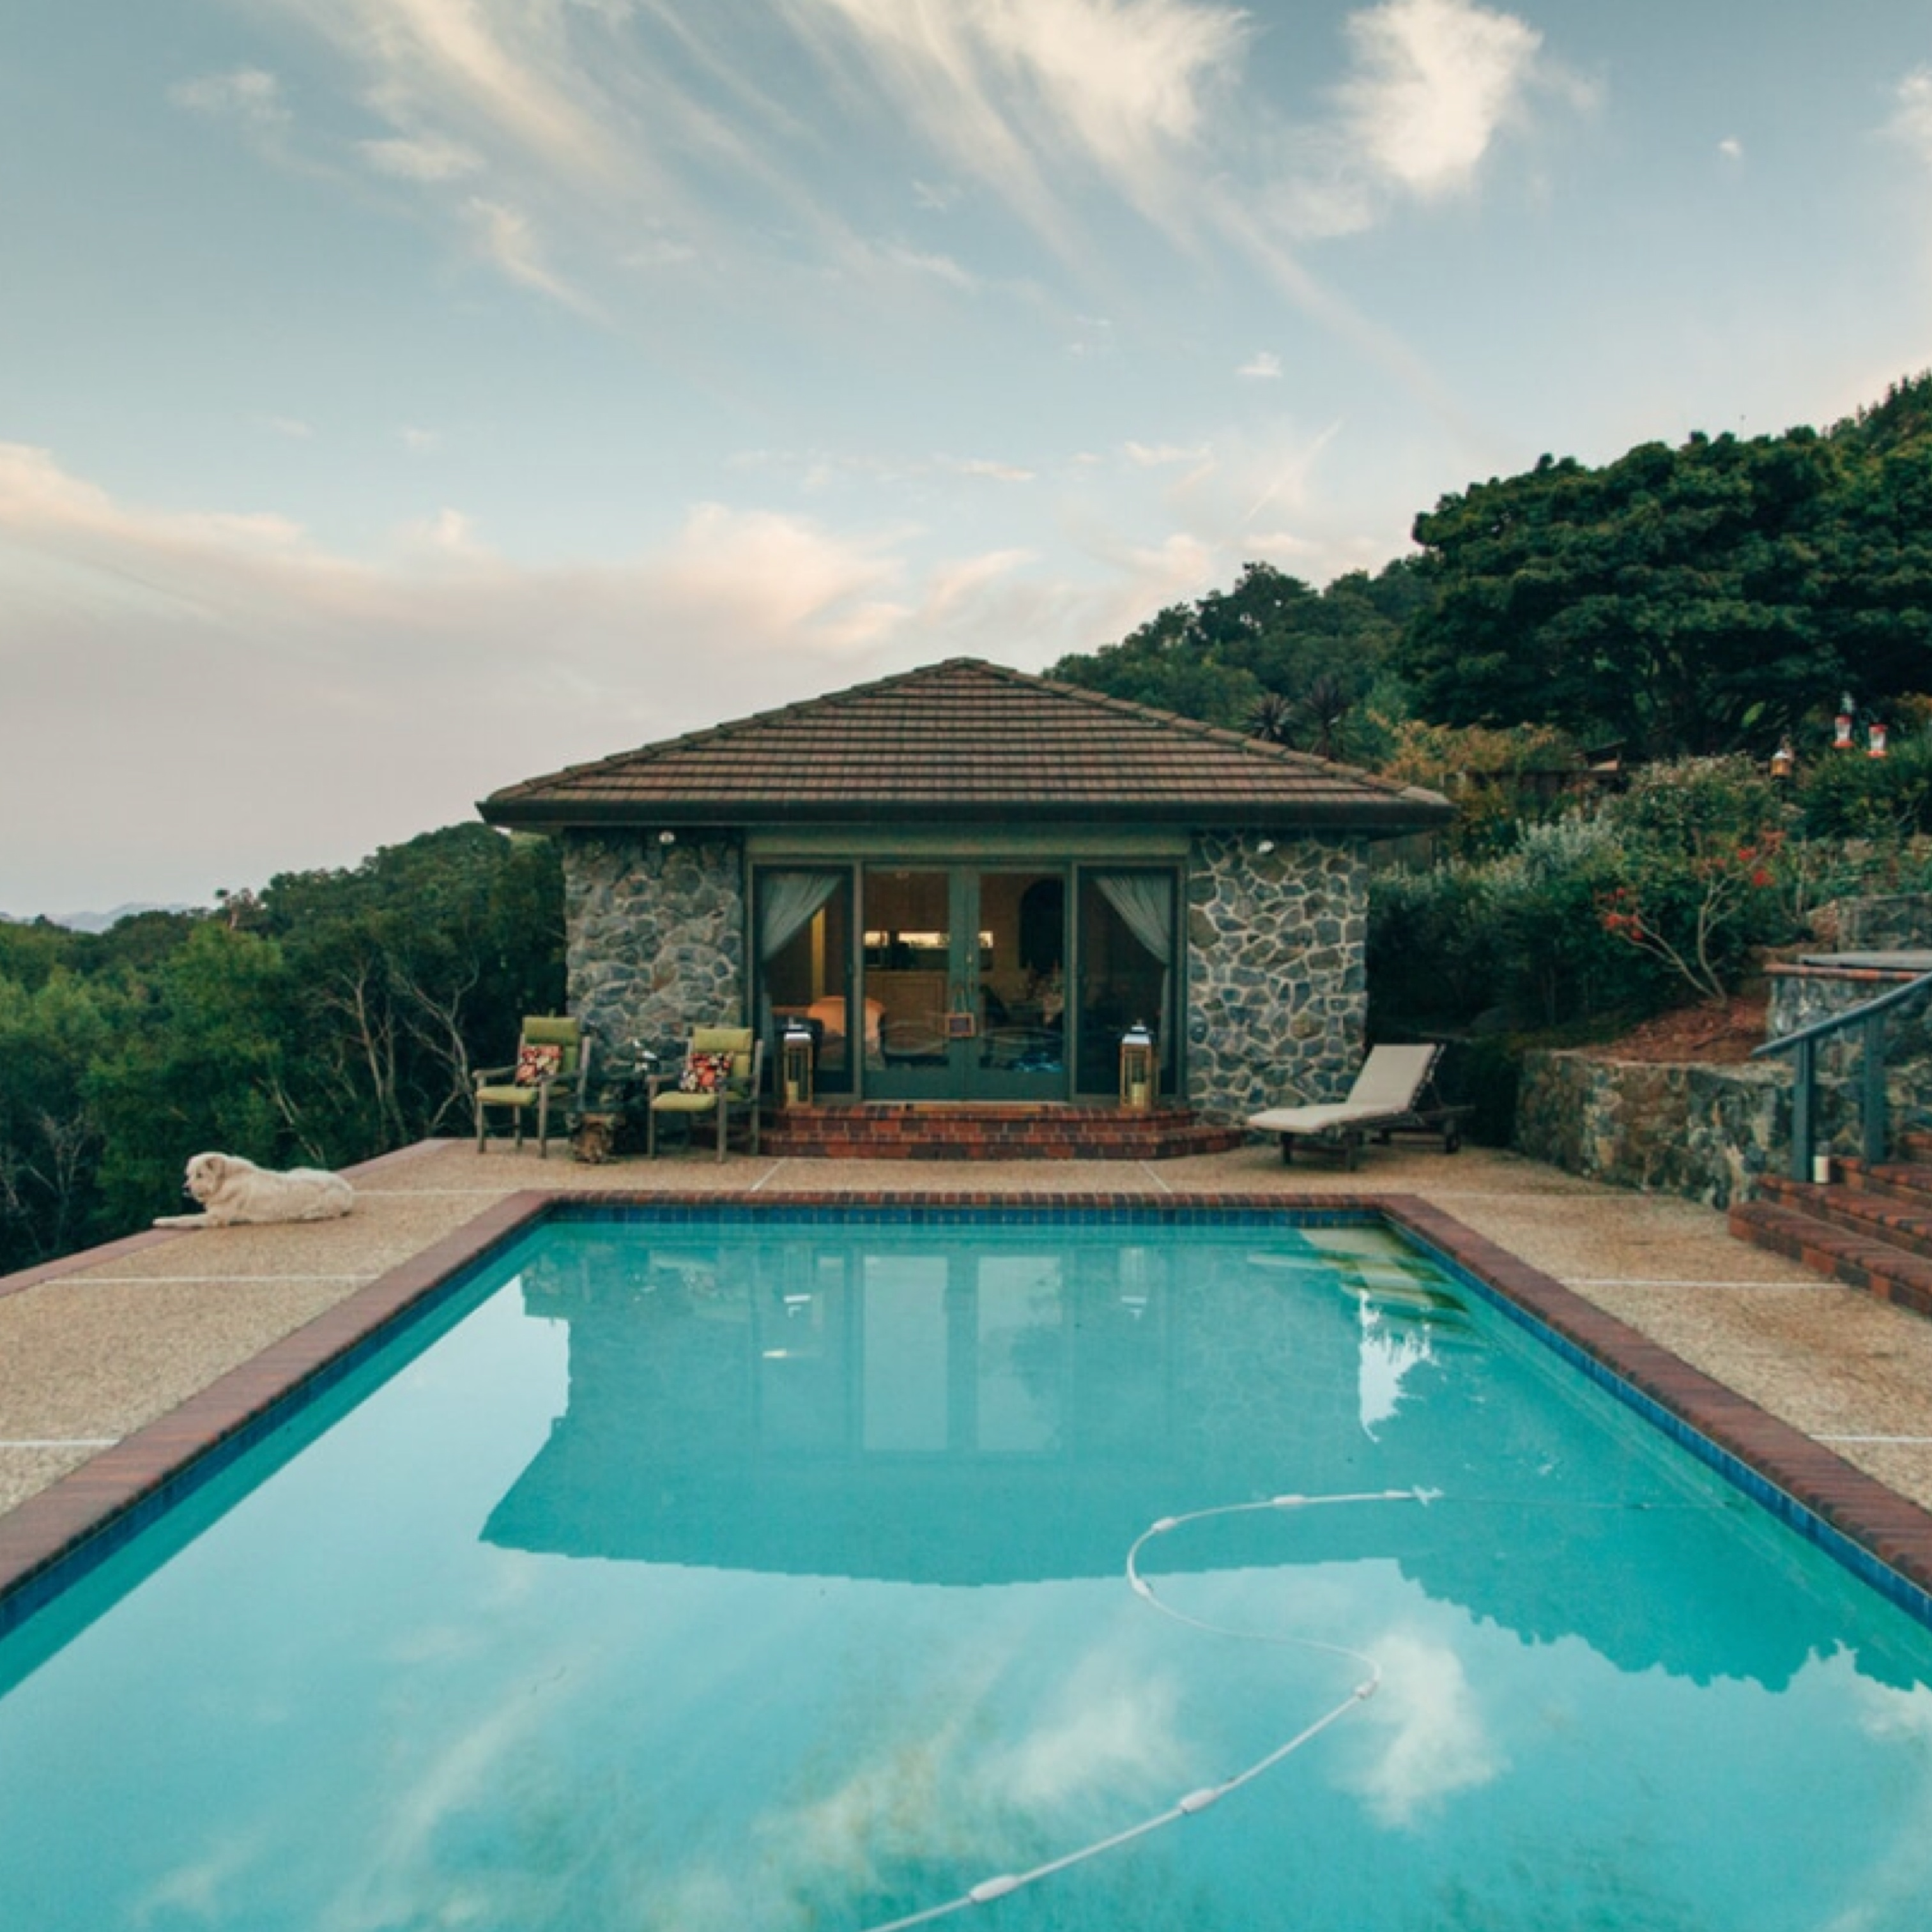 The challenges of building your own swimming pool - 360 ...